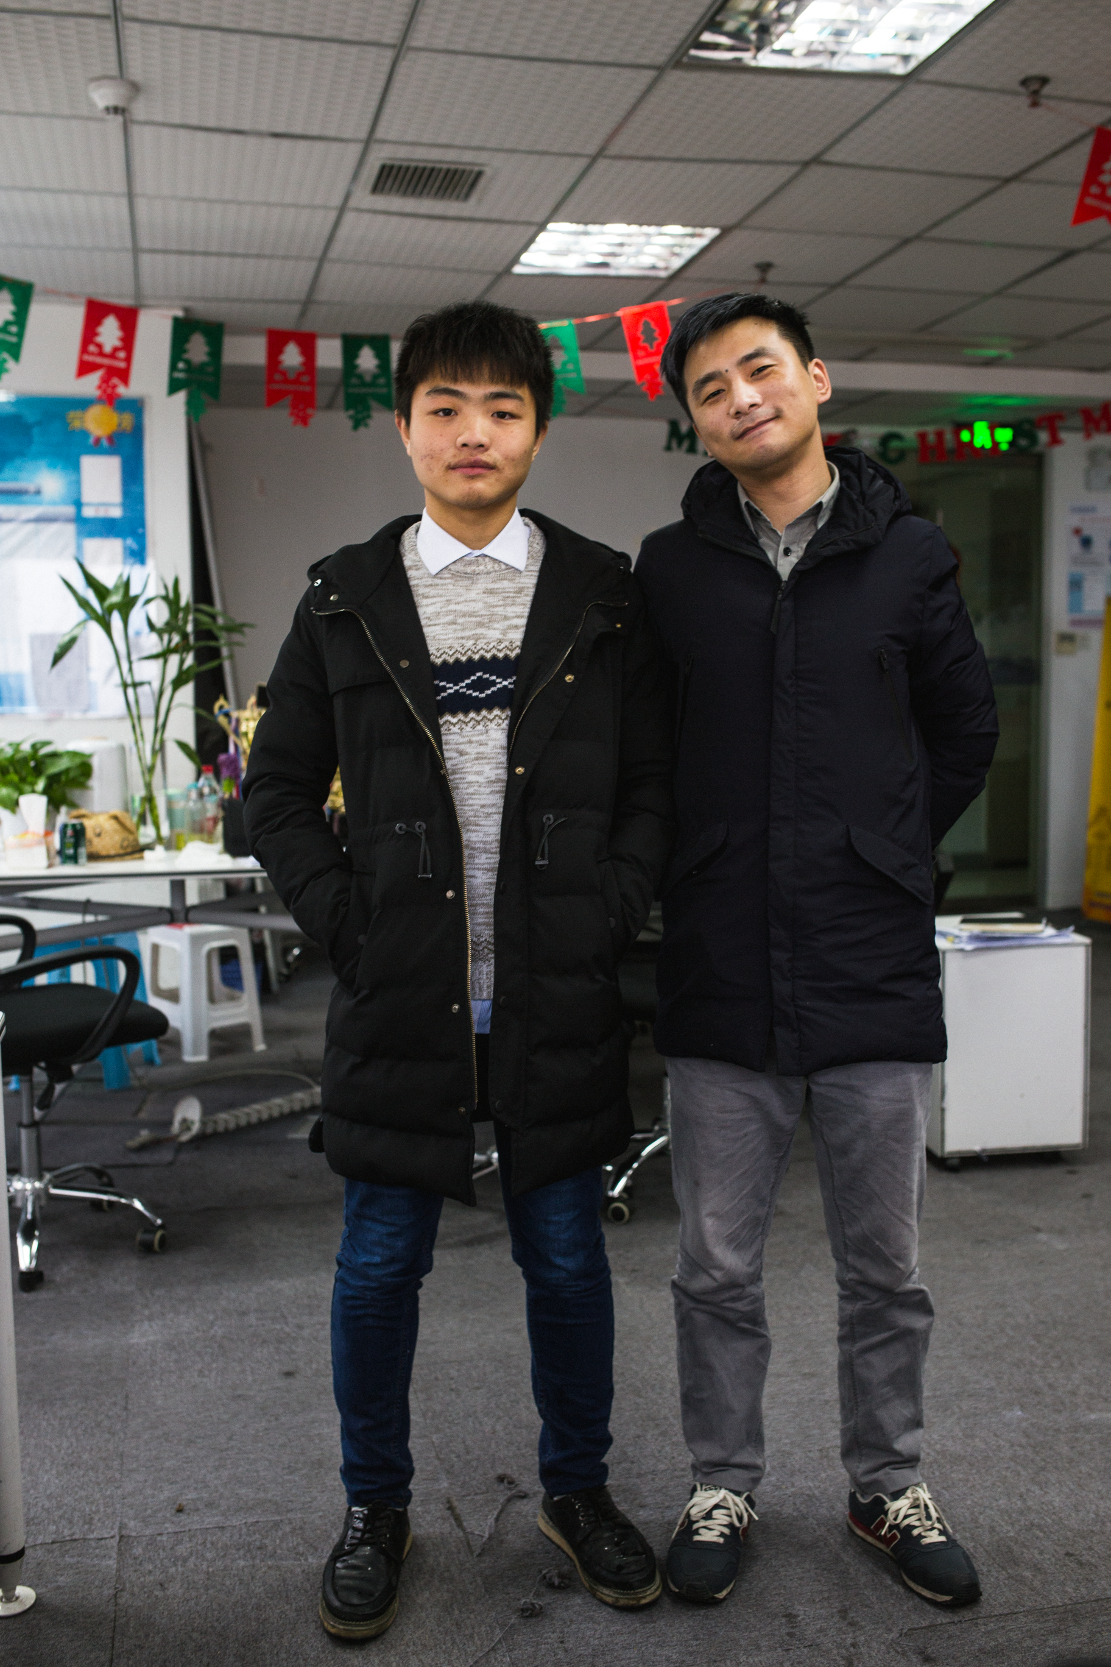 """I worked in a few different factories before I came here, but I'm much happier here. Back there each day was routine. Here I can use my skills. The money's better as well, the harder I work the more I can earn.""  Bai Jintao (left) Chongqing February 2017"